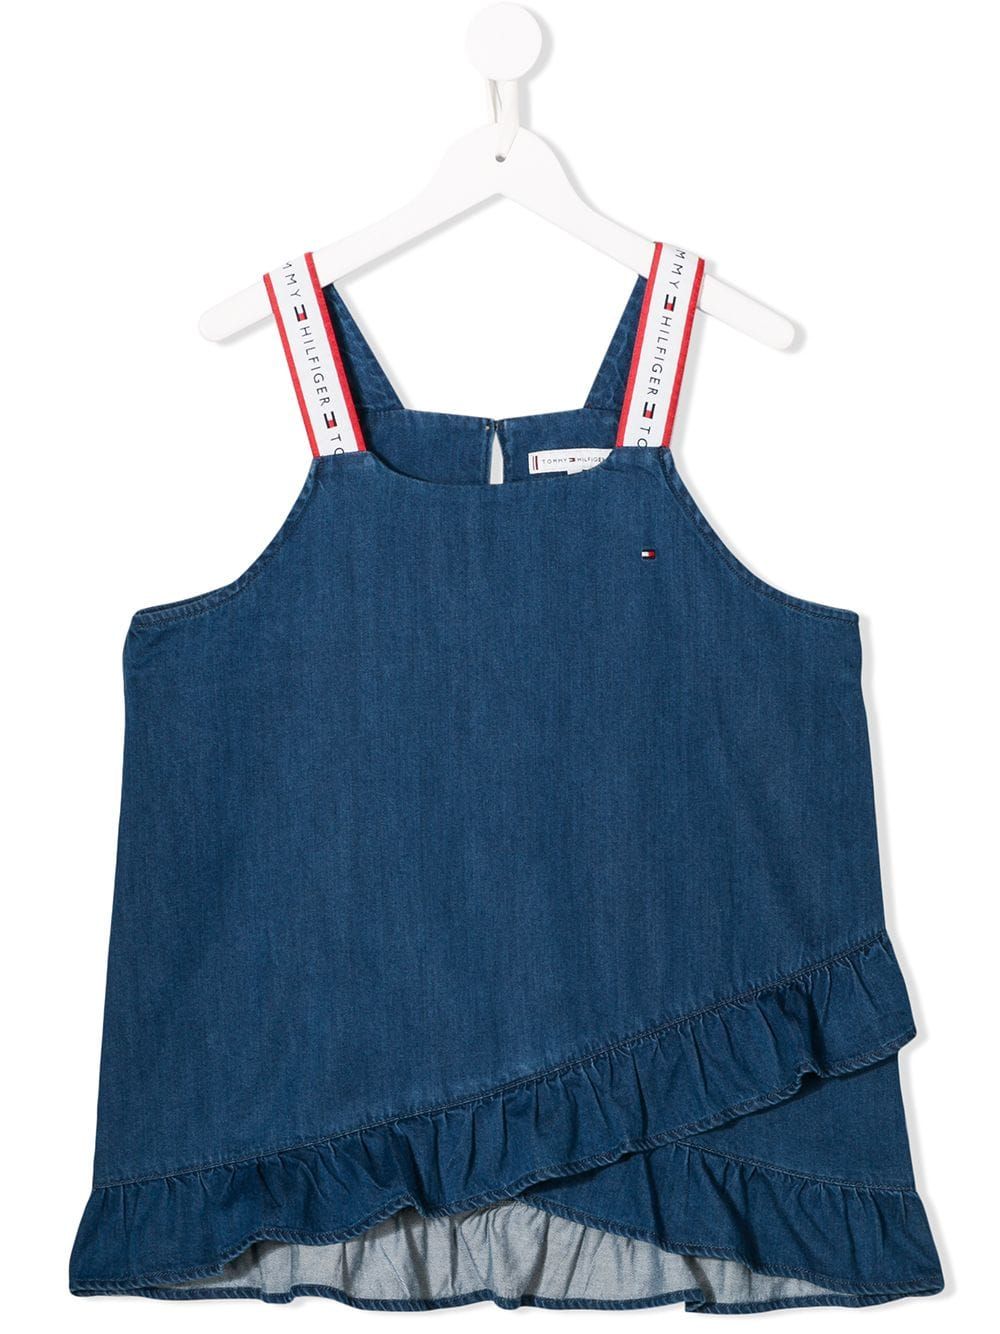 8dfa82b570 Tommy Hilfiger Junior джинсовый топ - Glami.ru